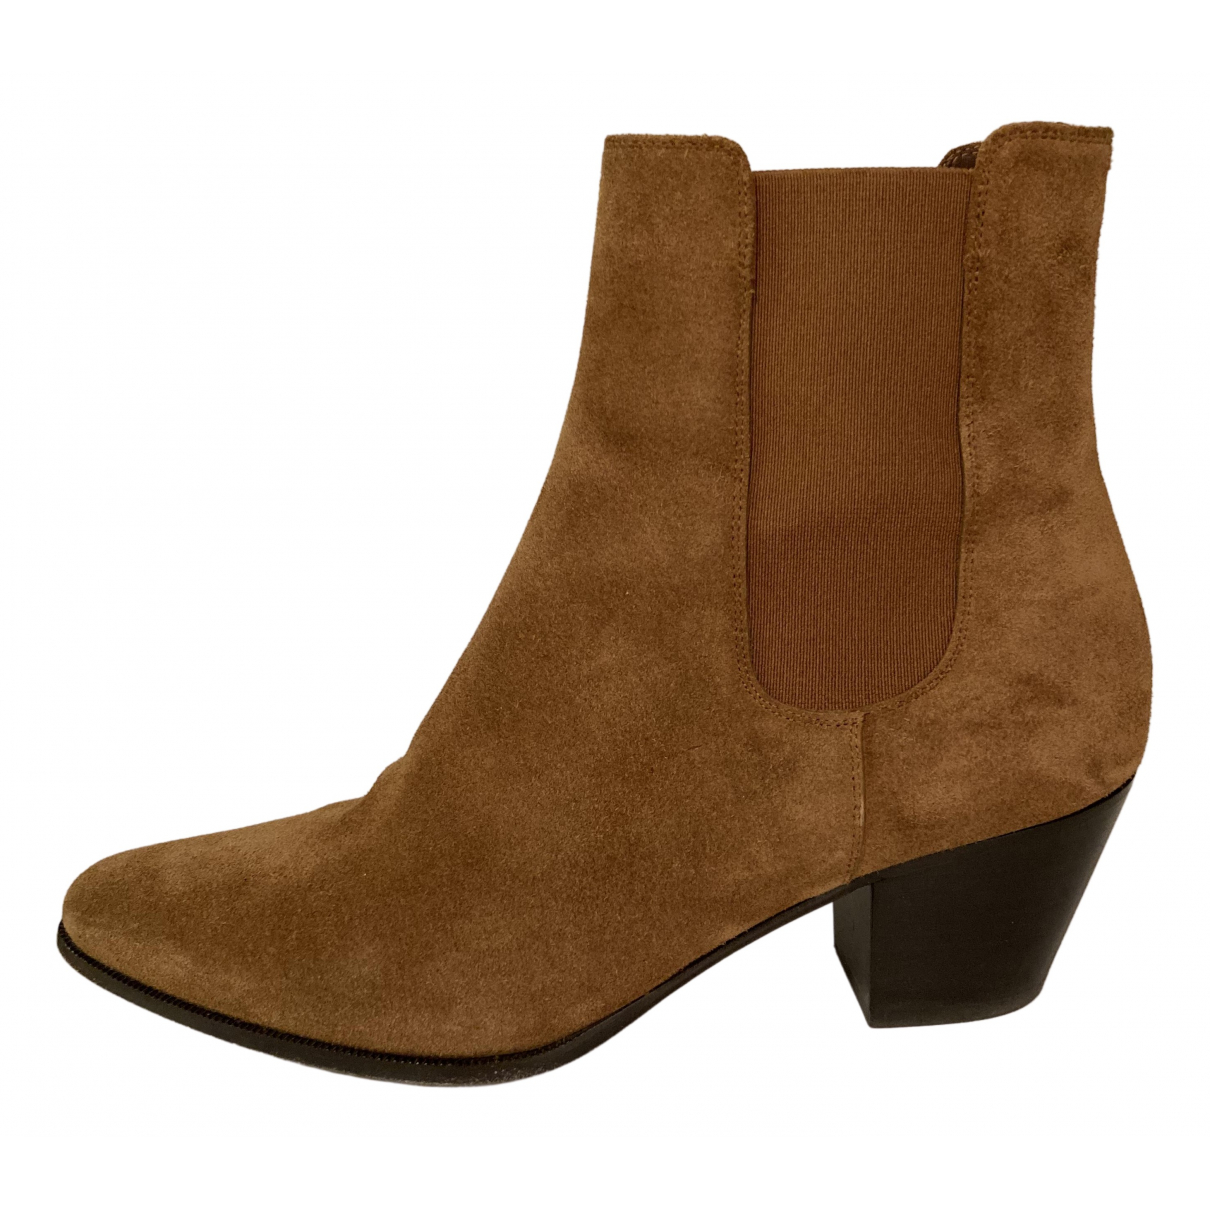 Celine Camargue Brown Suede Ankle boots for Women